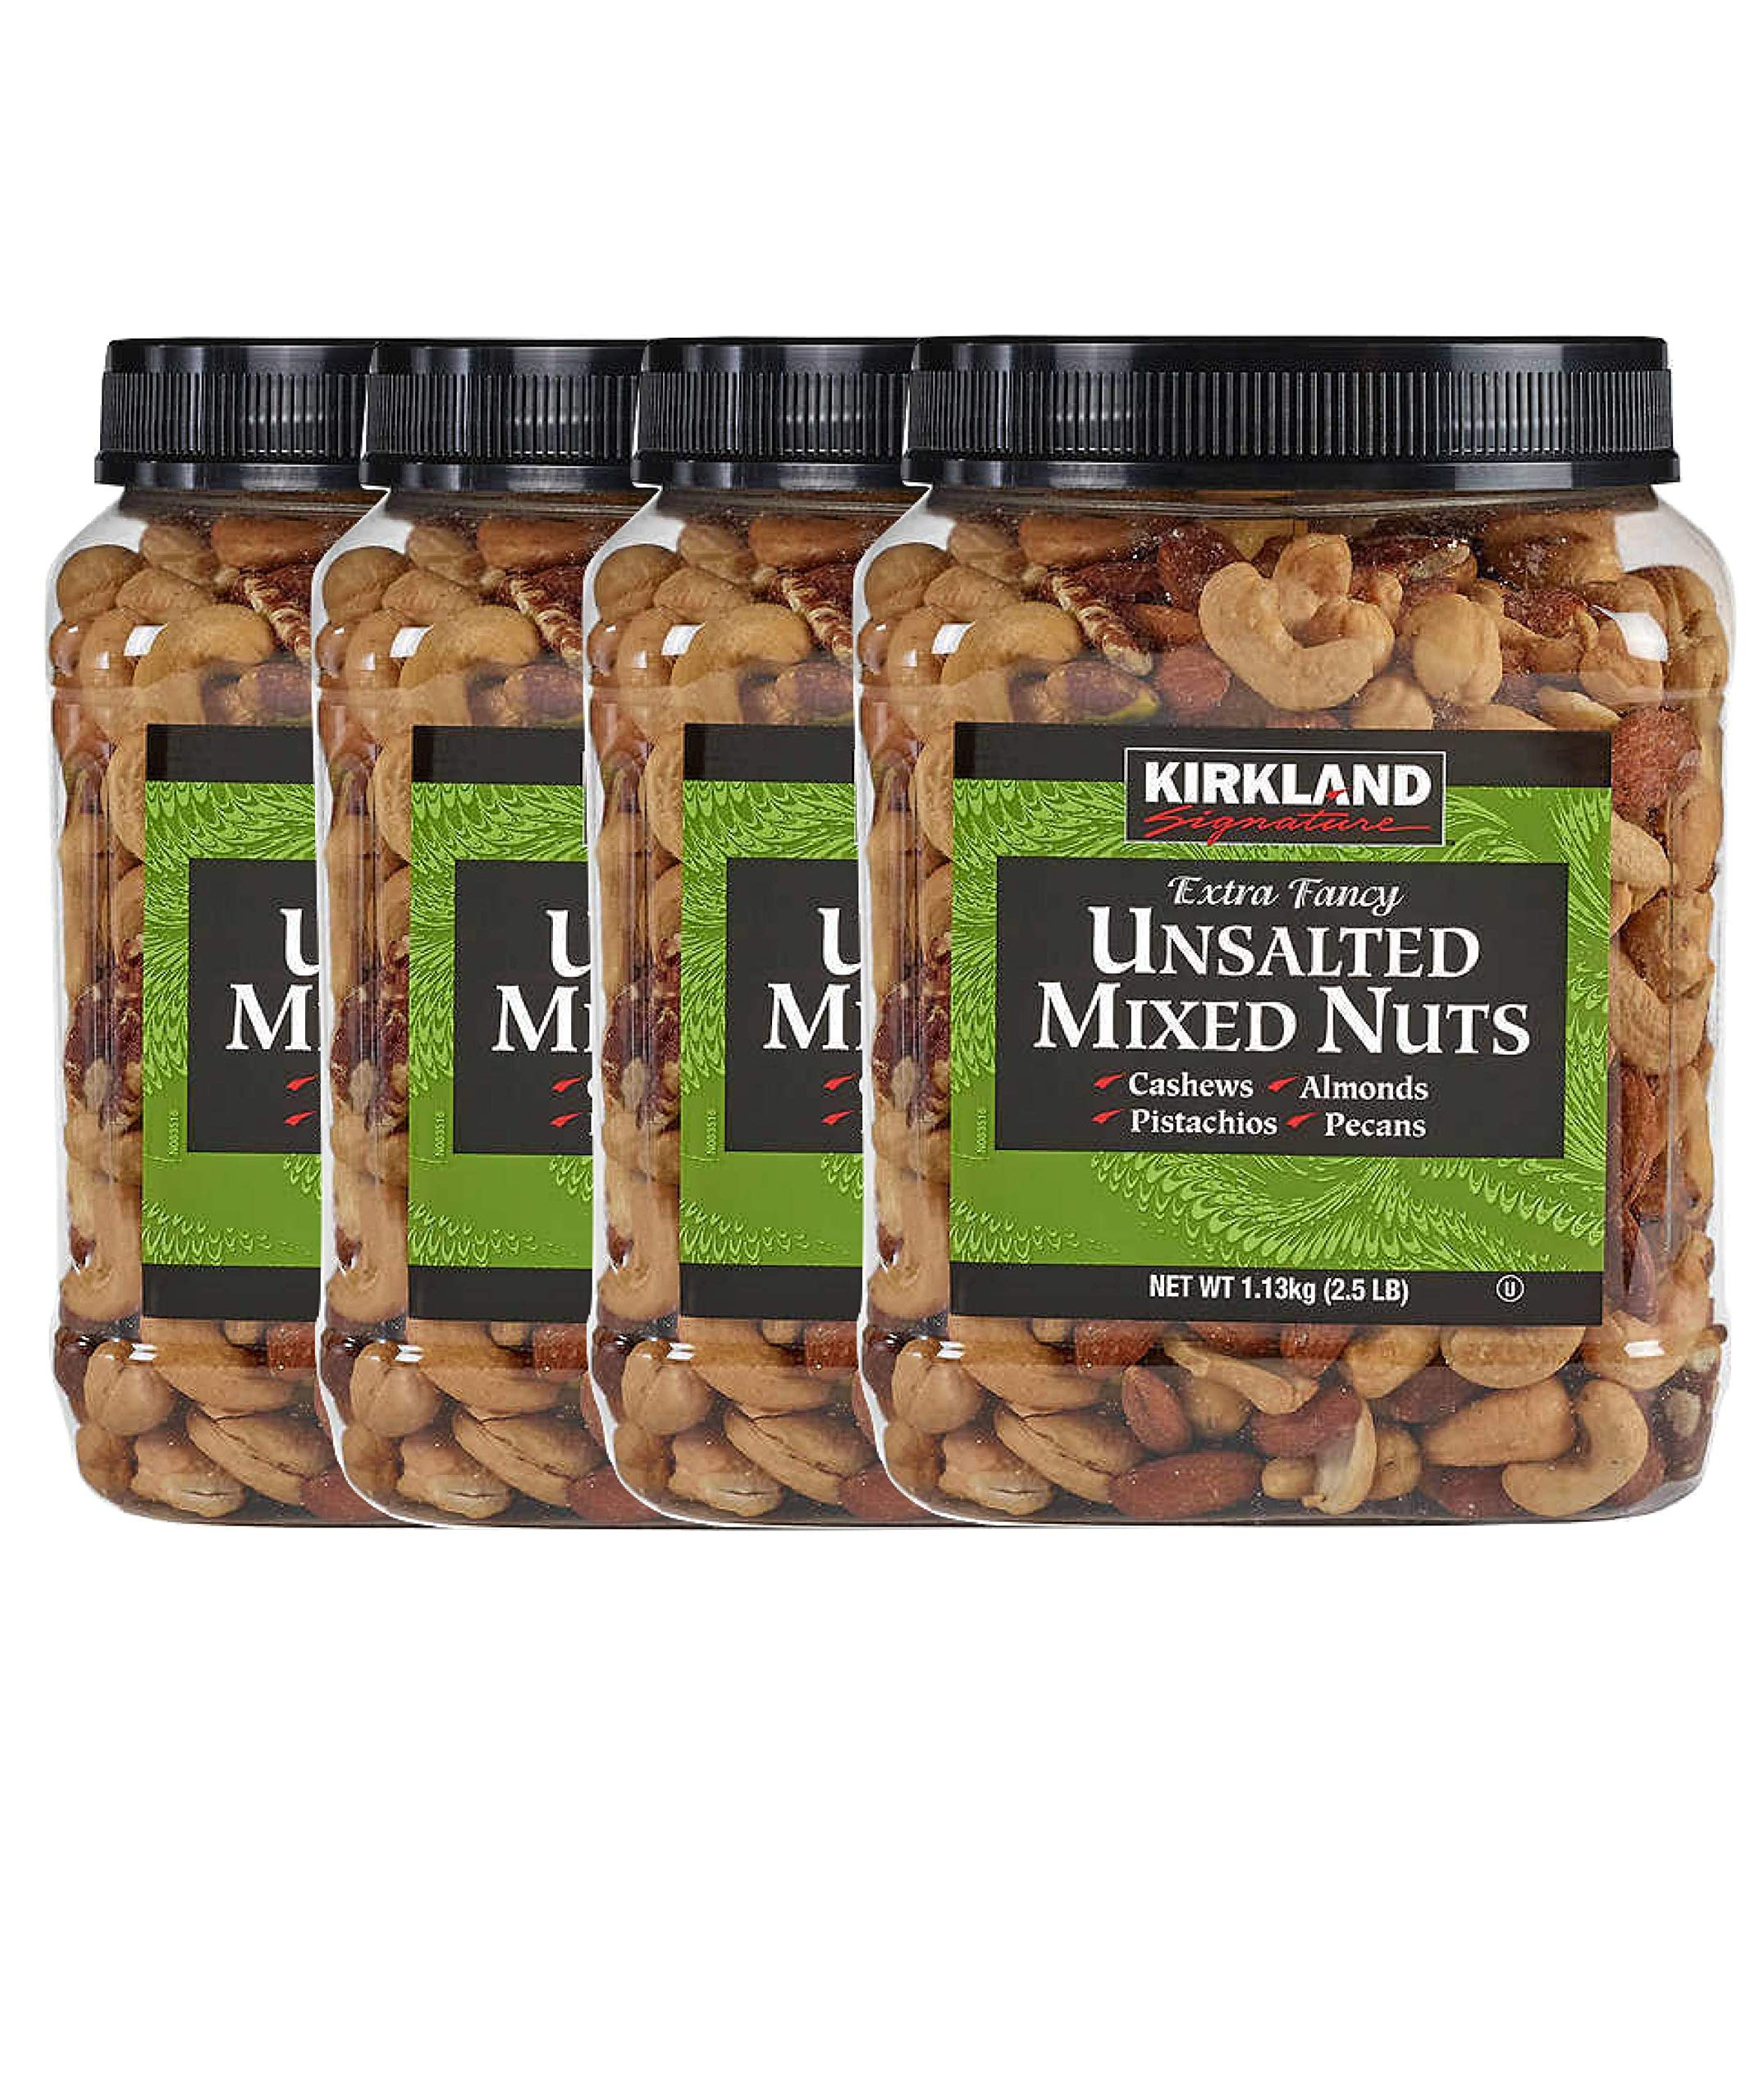 Kirkland Signature Extra Fancy Mixed Nuts, Unsalted and Shelled 40 oz (Pack of 4)